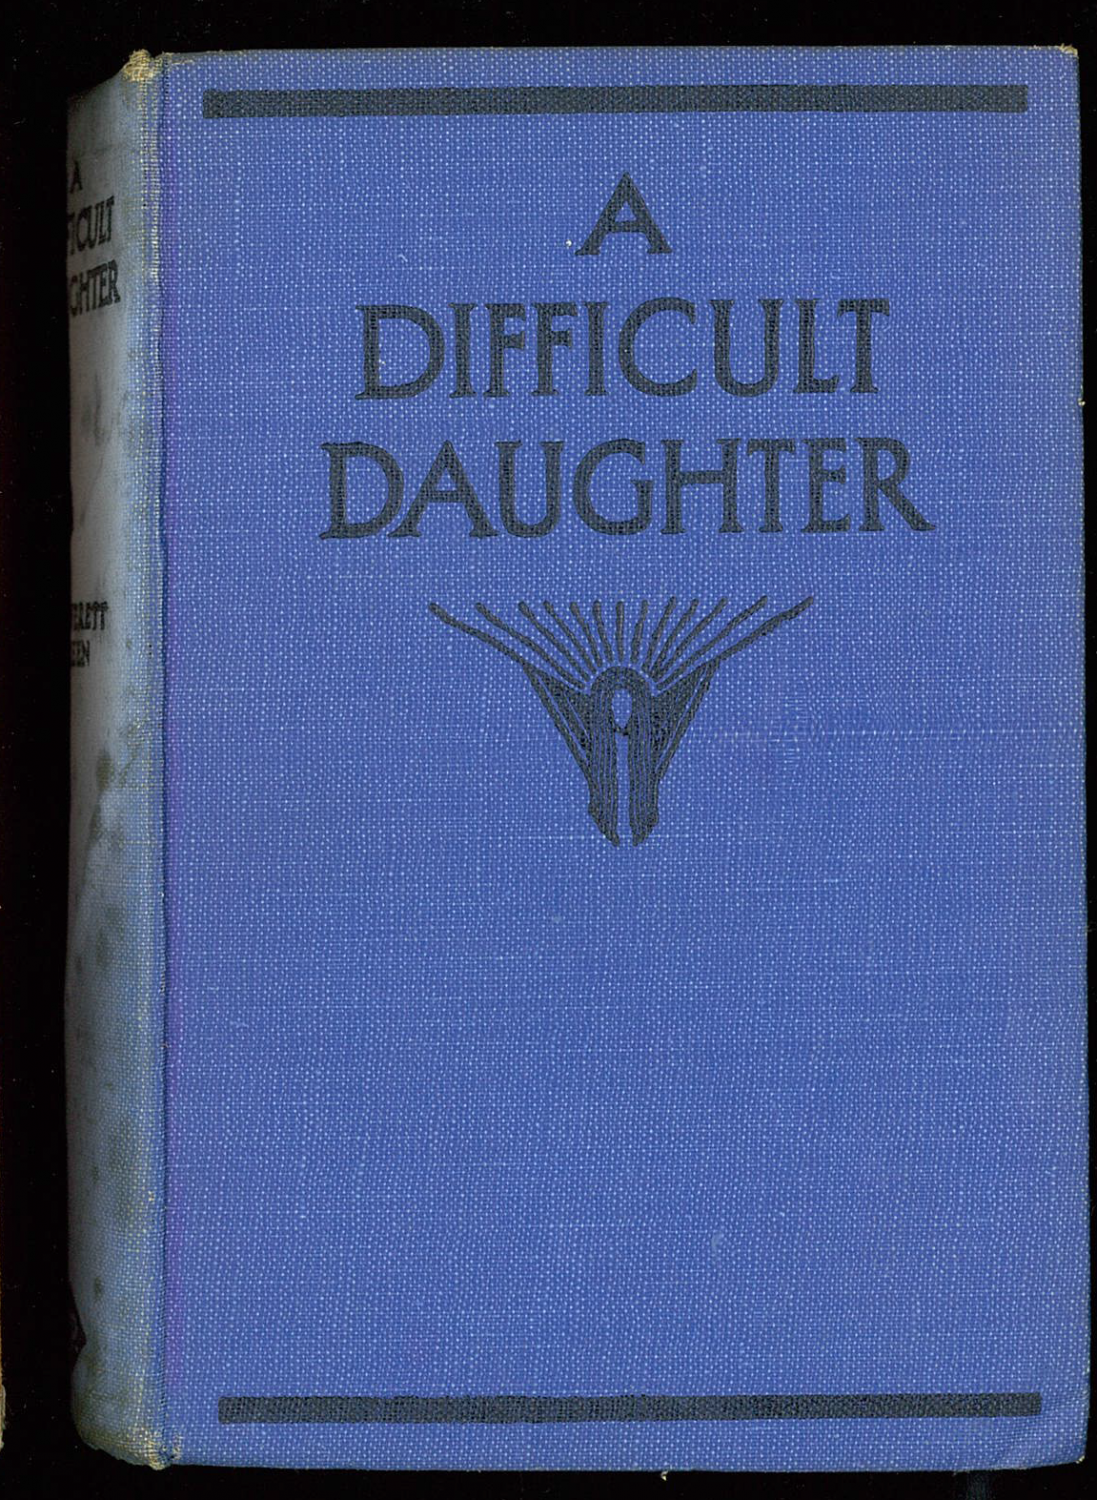 A Difficult Daughter